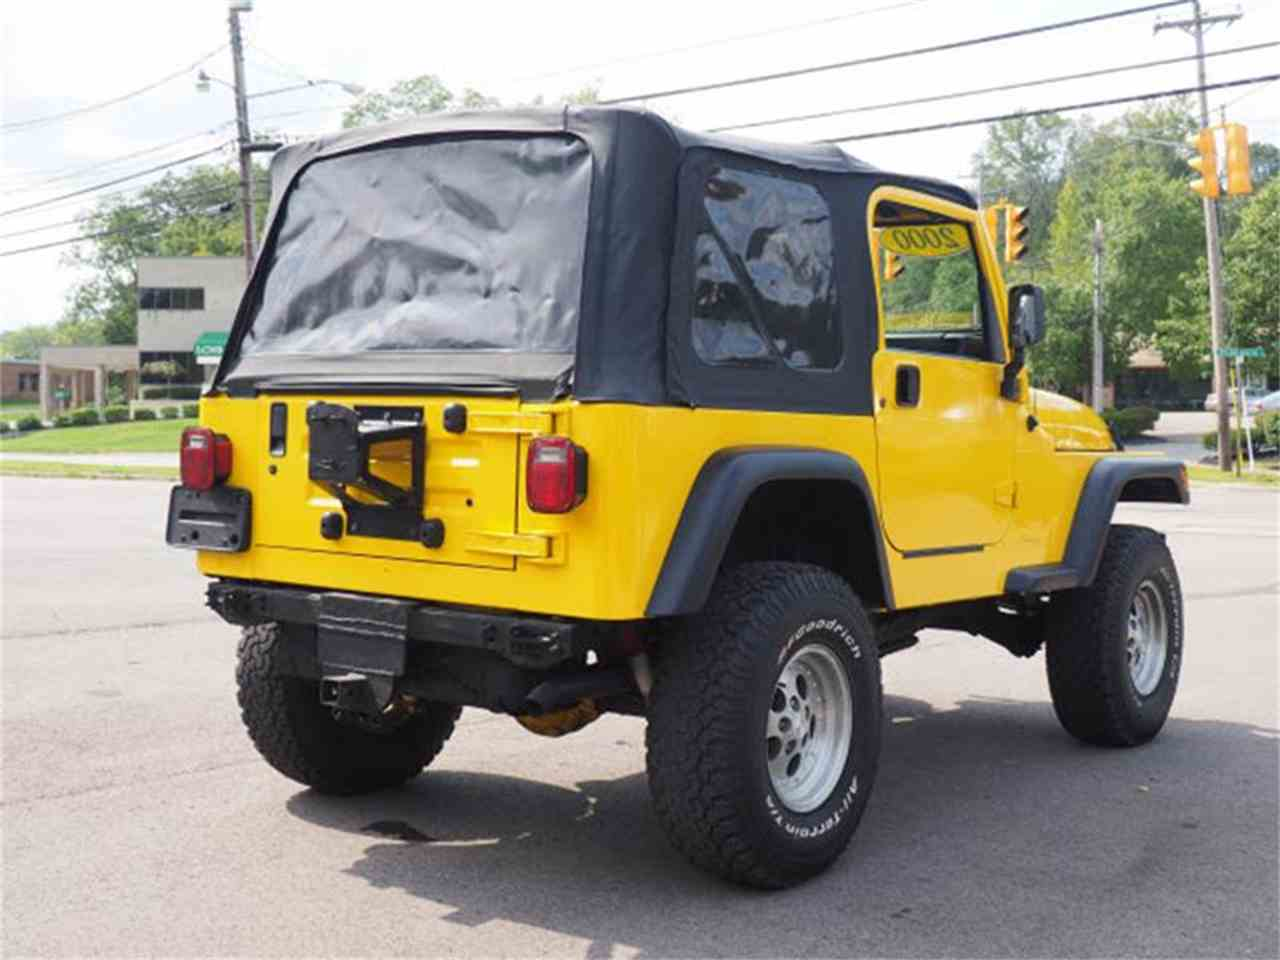 Large Picture of 2000 Jeep Wrangler located in Ohio - $6,995.00 - MBLA